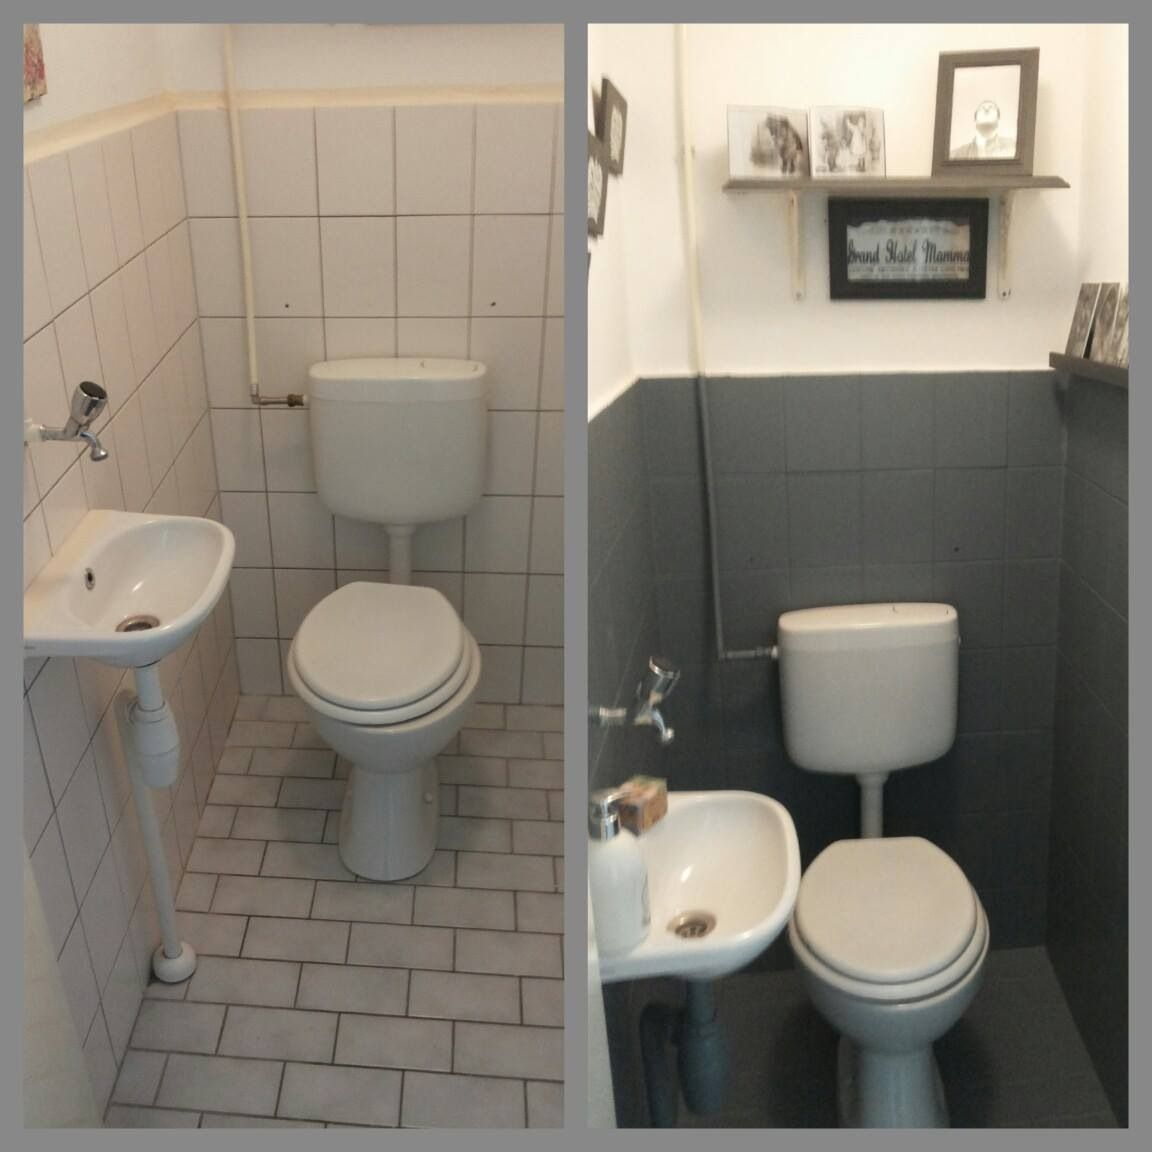 Wc Opknappen Toilet Opknappen Met Krijtverg Chalk Paint For The Home In 2019